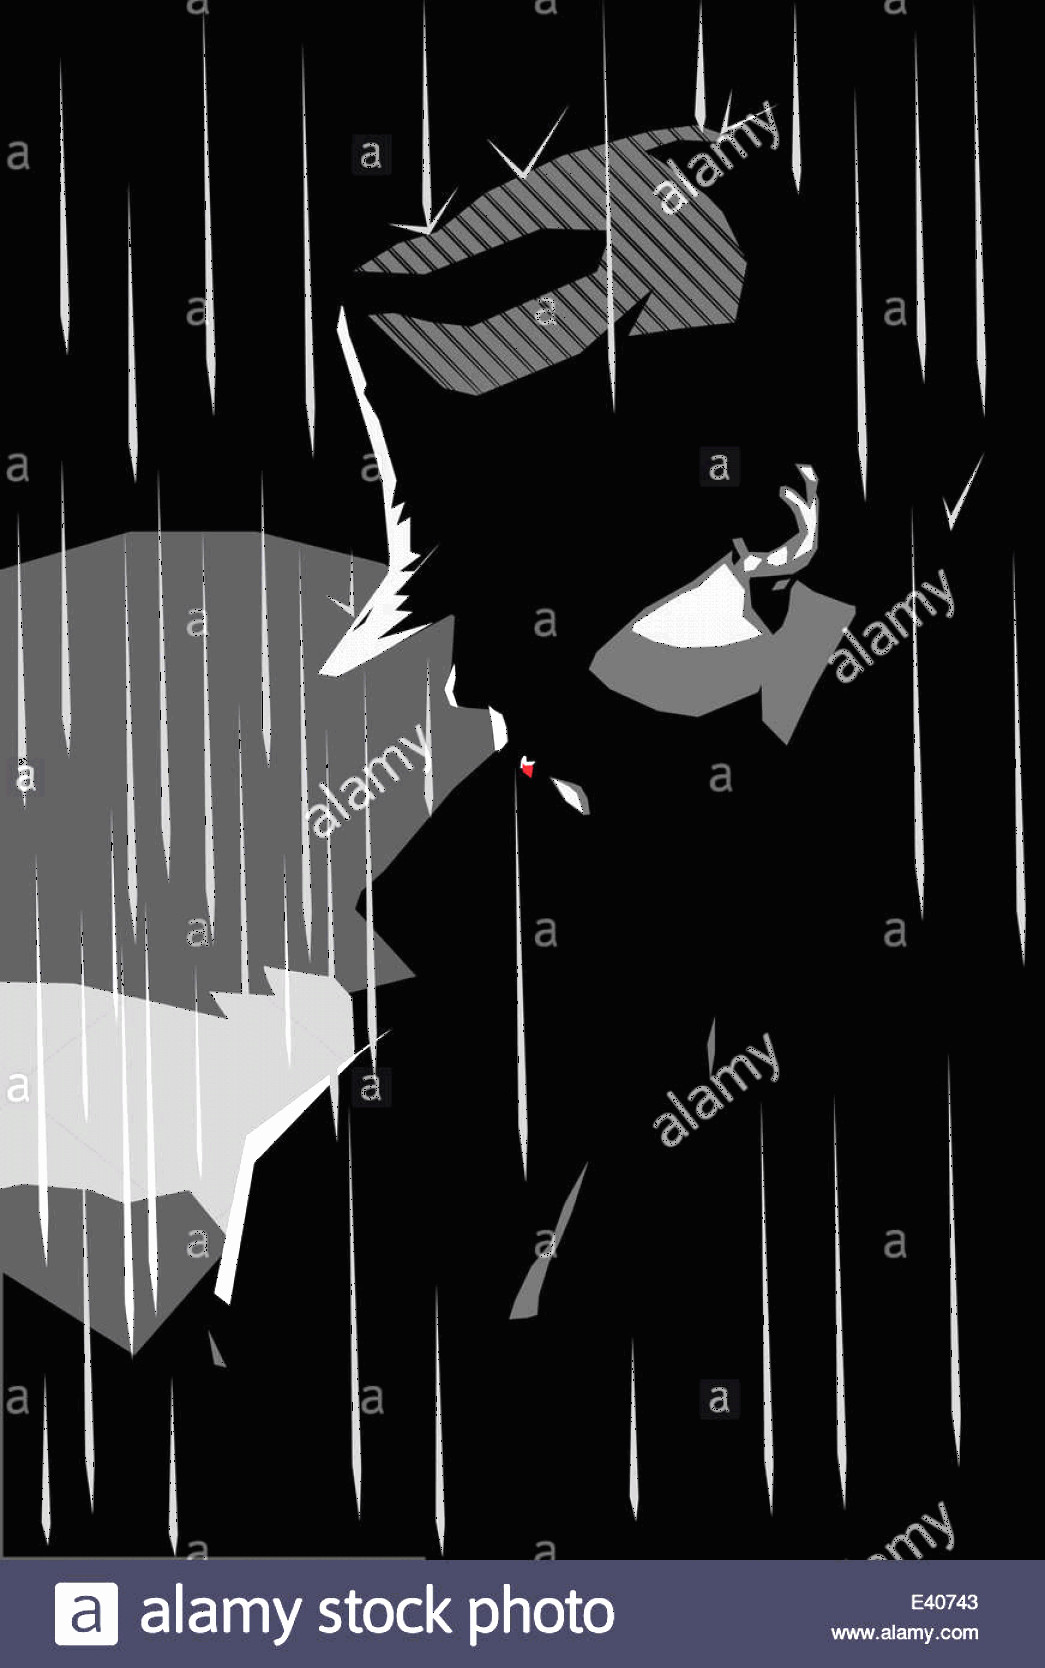 Noire Portrait Vector: Stock Photo Vector Illustration Of A Girl In A Jacket And Hat With Rainy Background